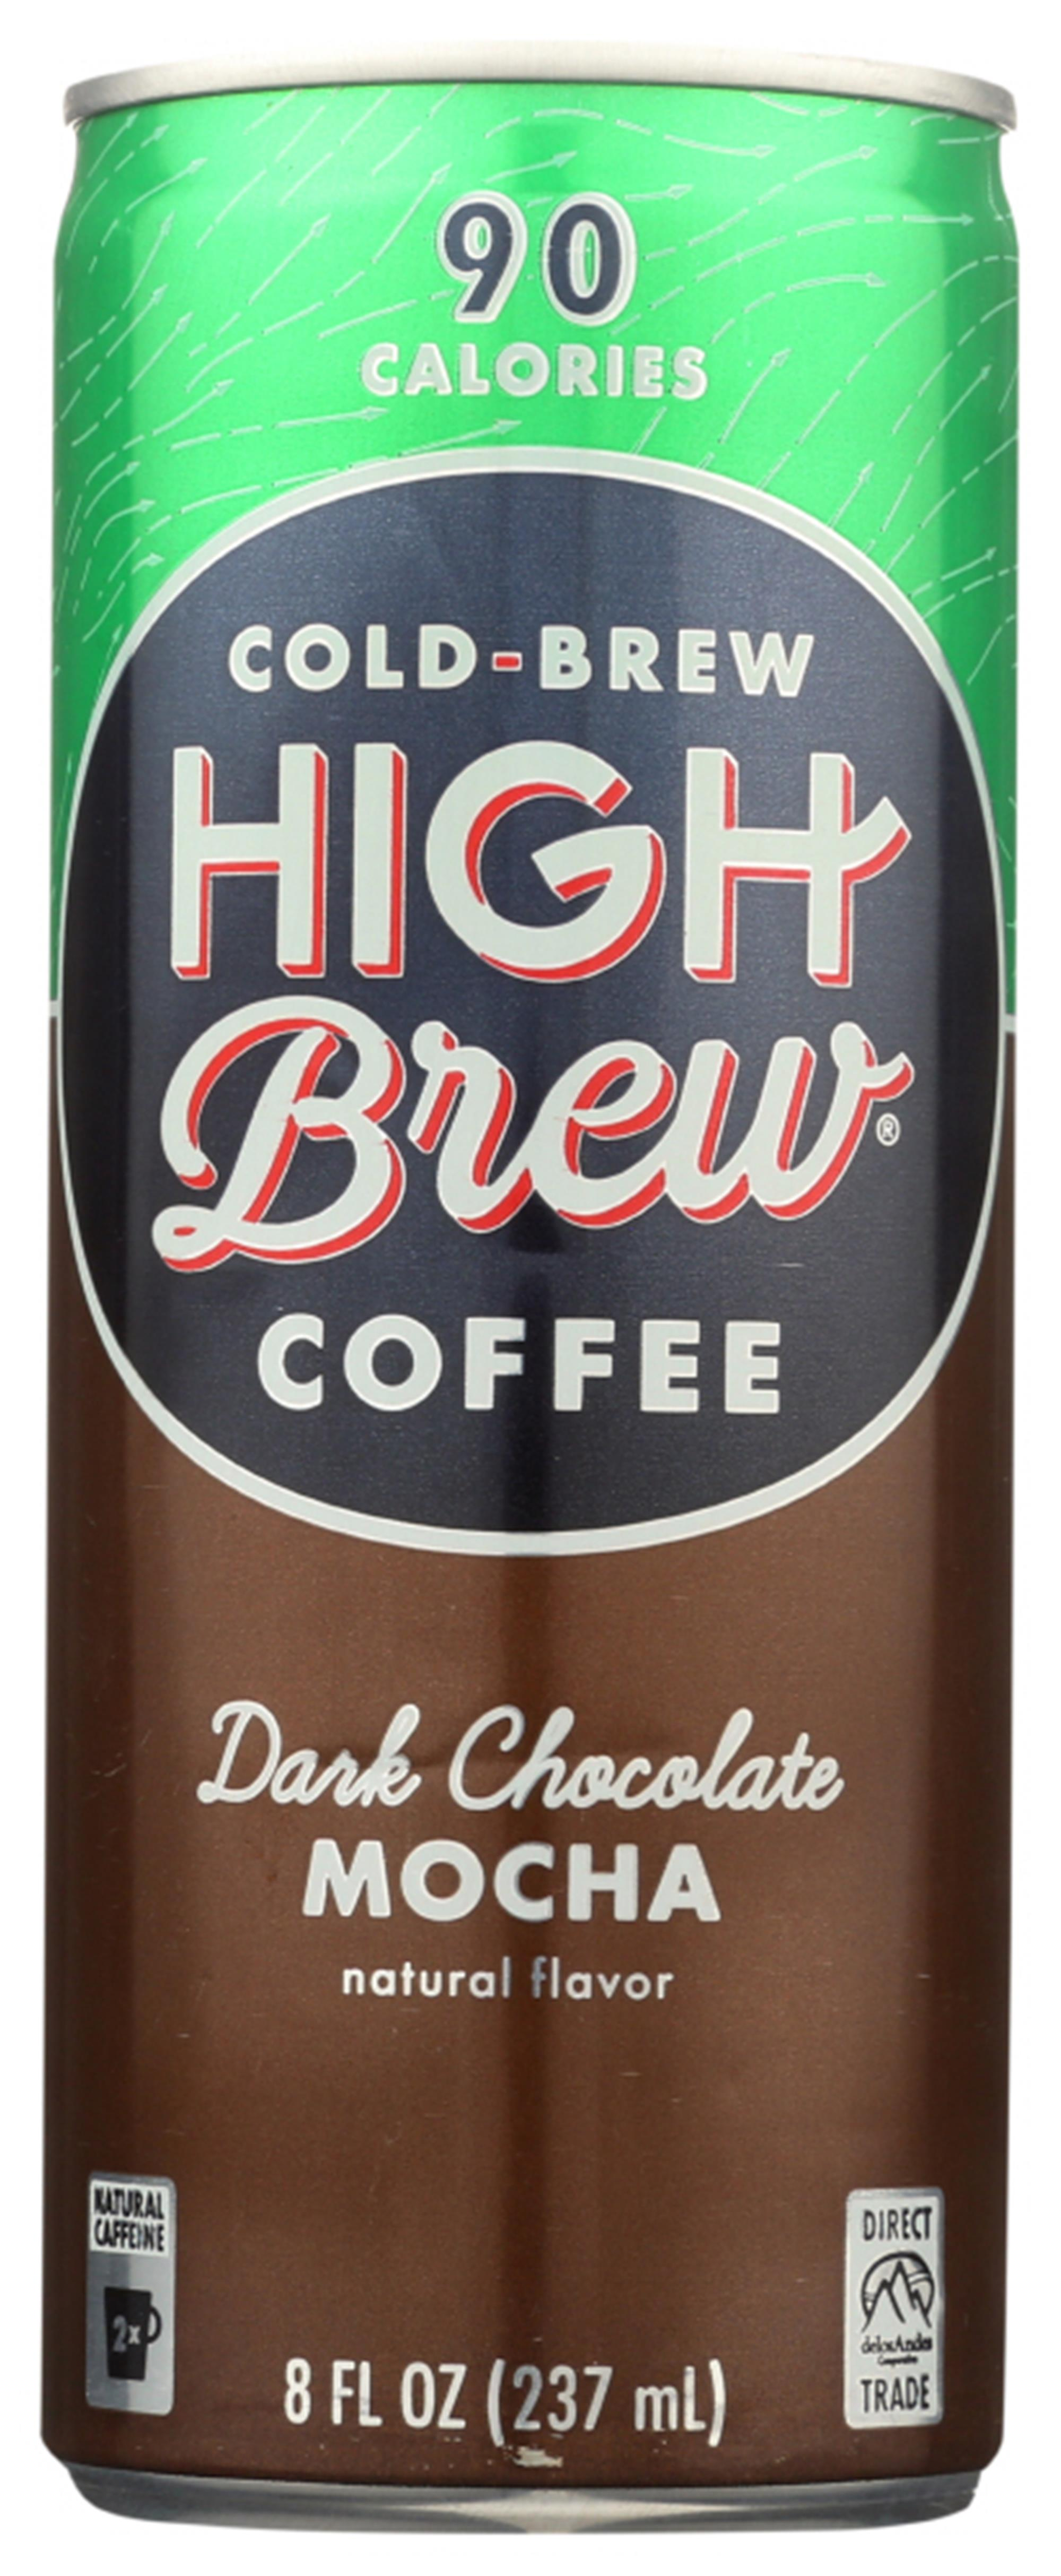 (12 Pack) High Brew Cold-Brew Coffee, 8 FZ